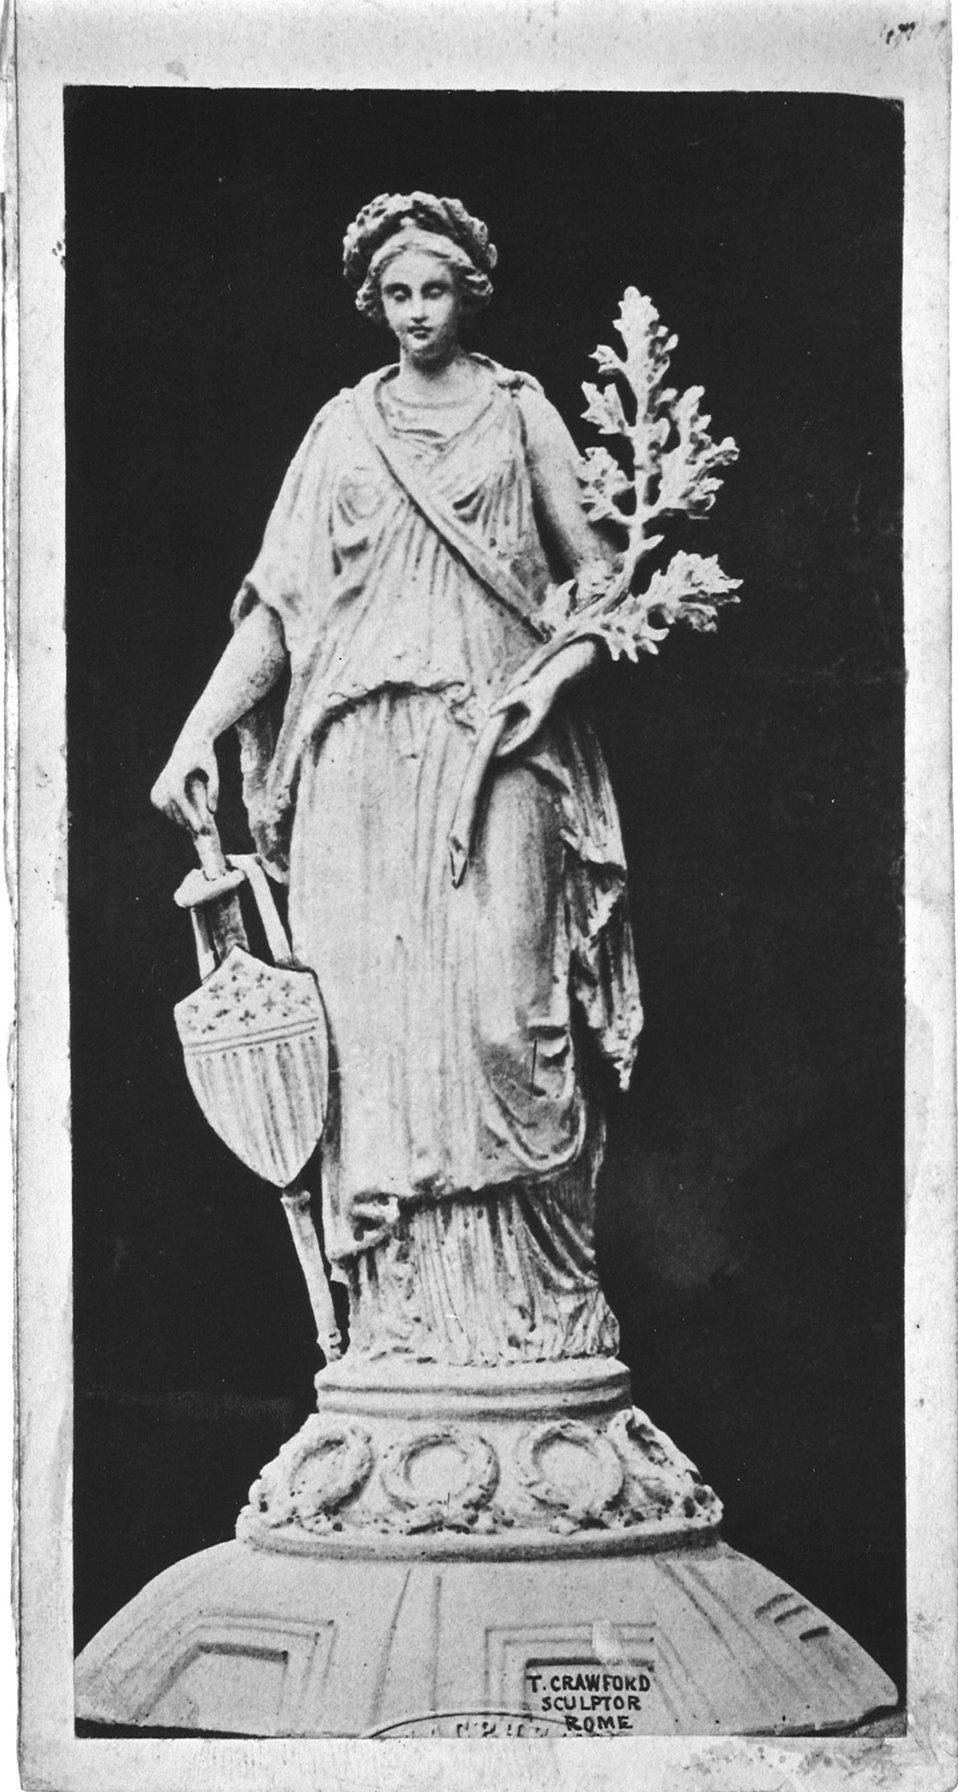 Original Design for Statue of Freedom